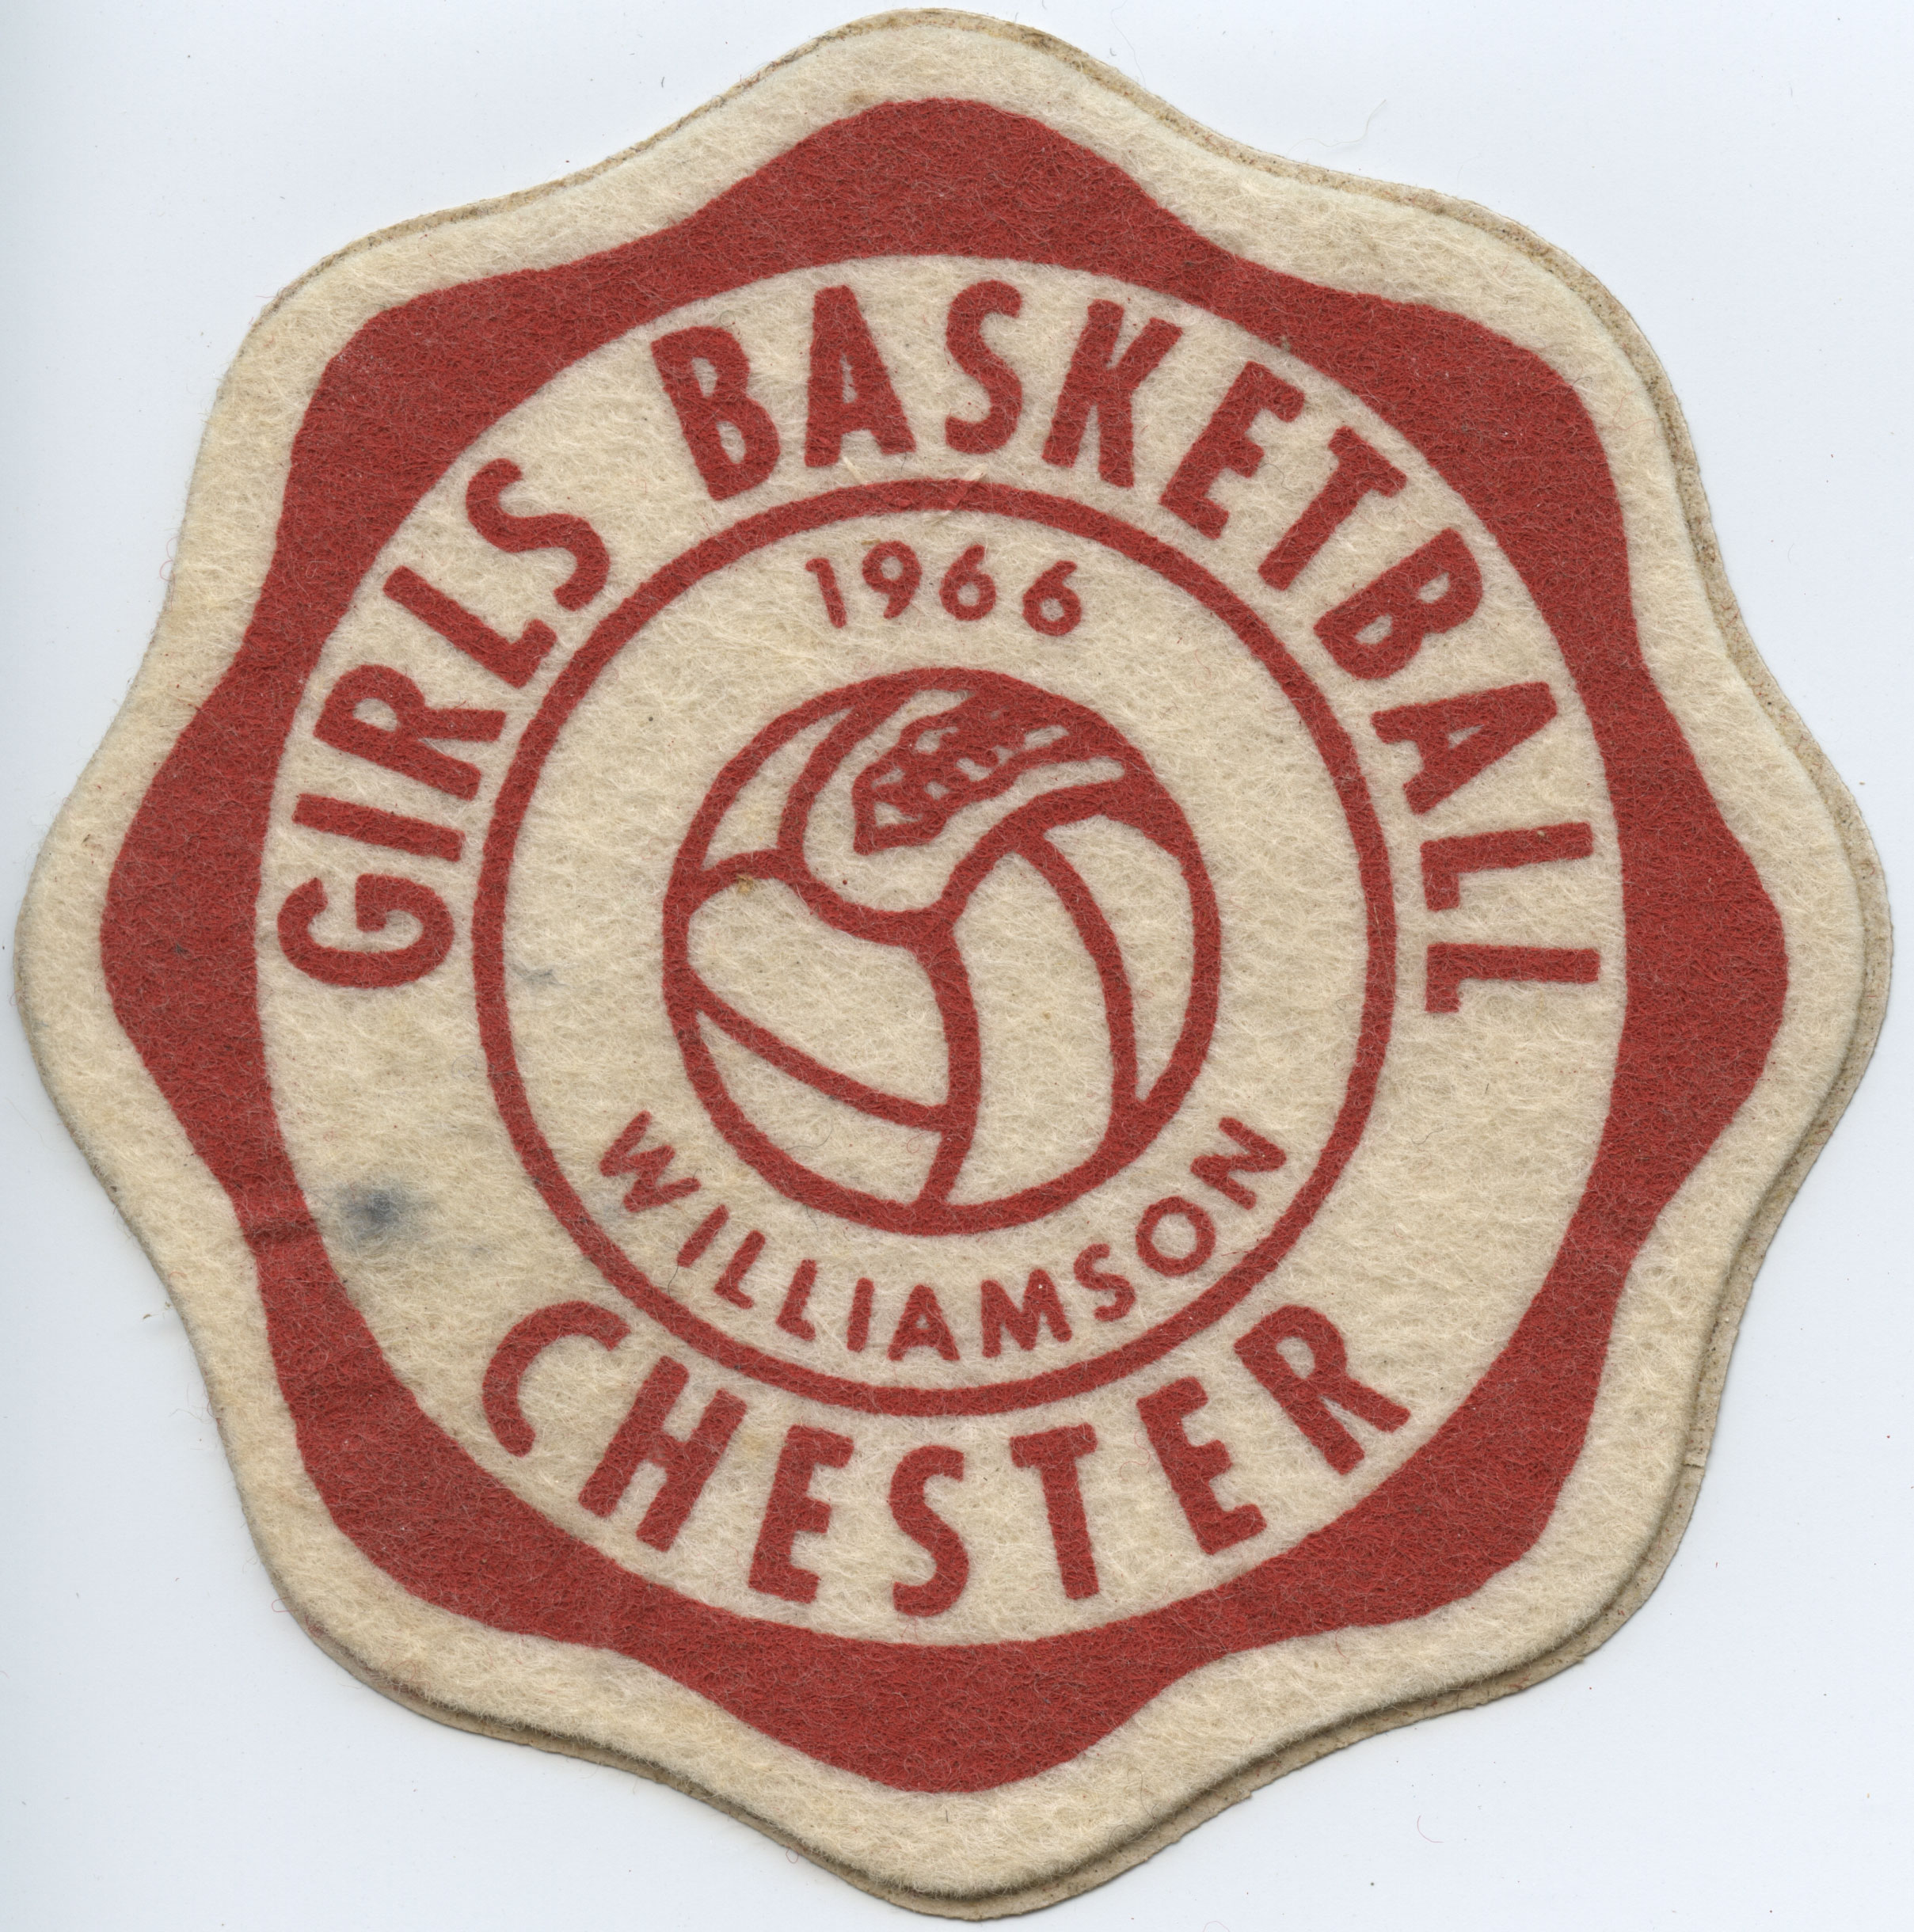 Girls' Basketball Patch, 1966